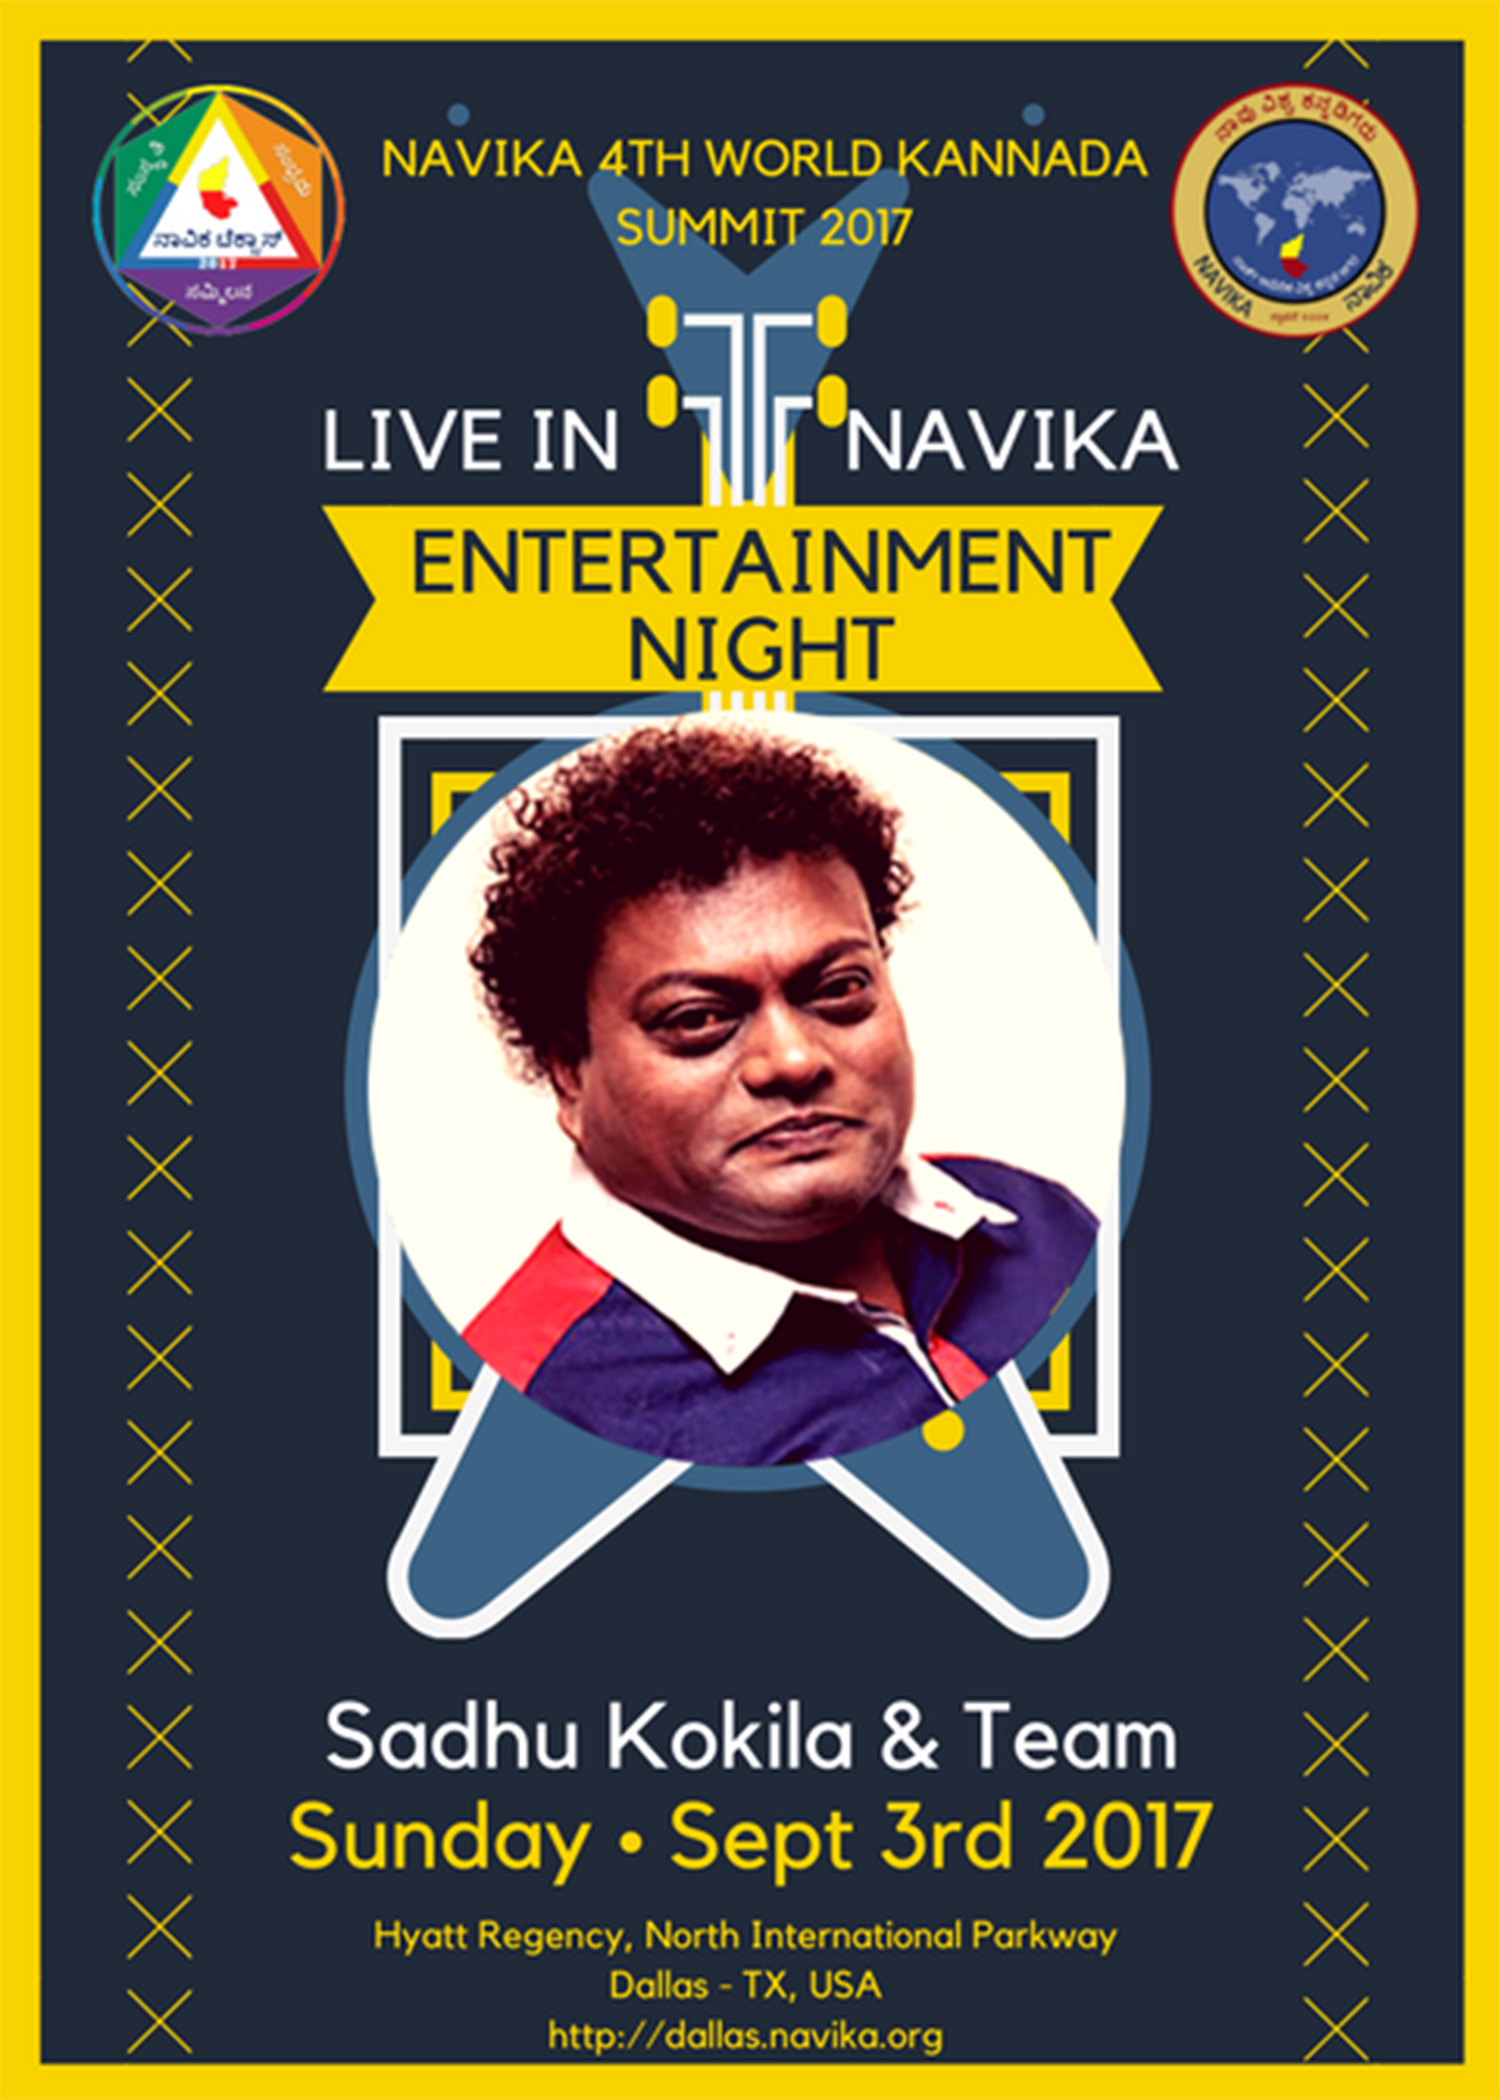 Entertainment Night by Sadhu Kokila